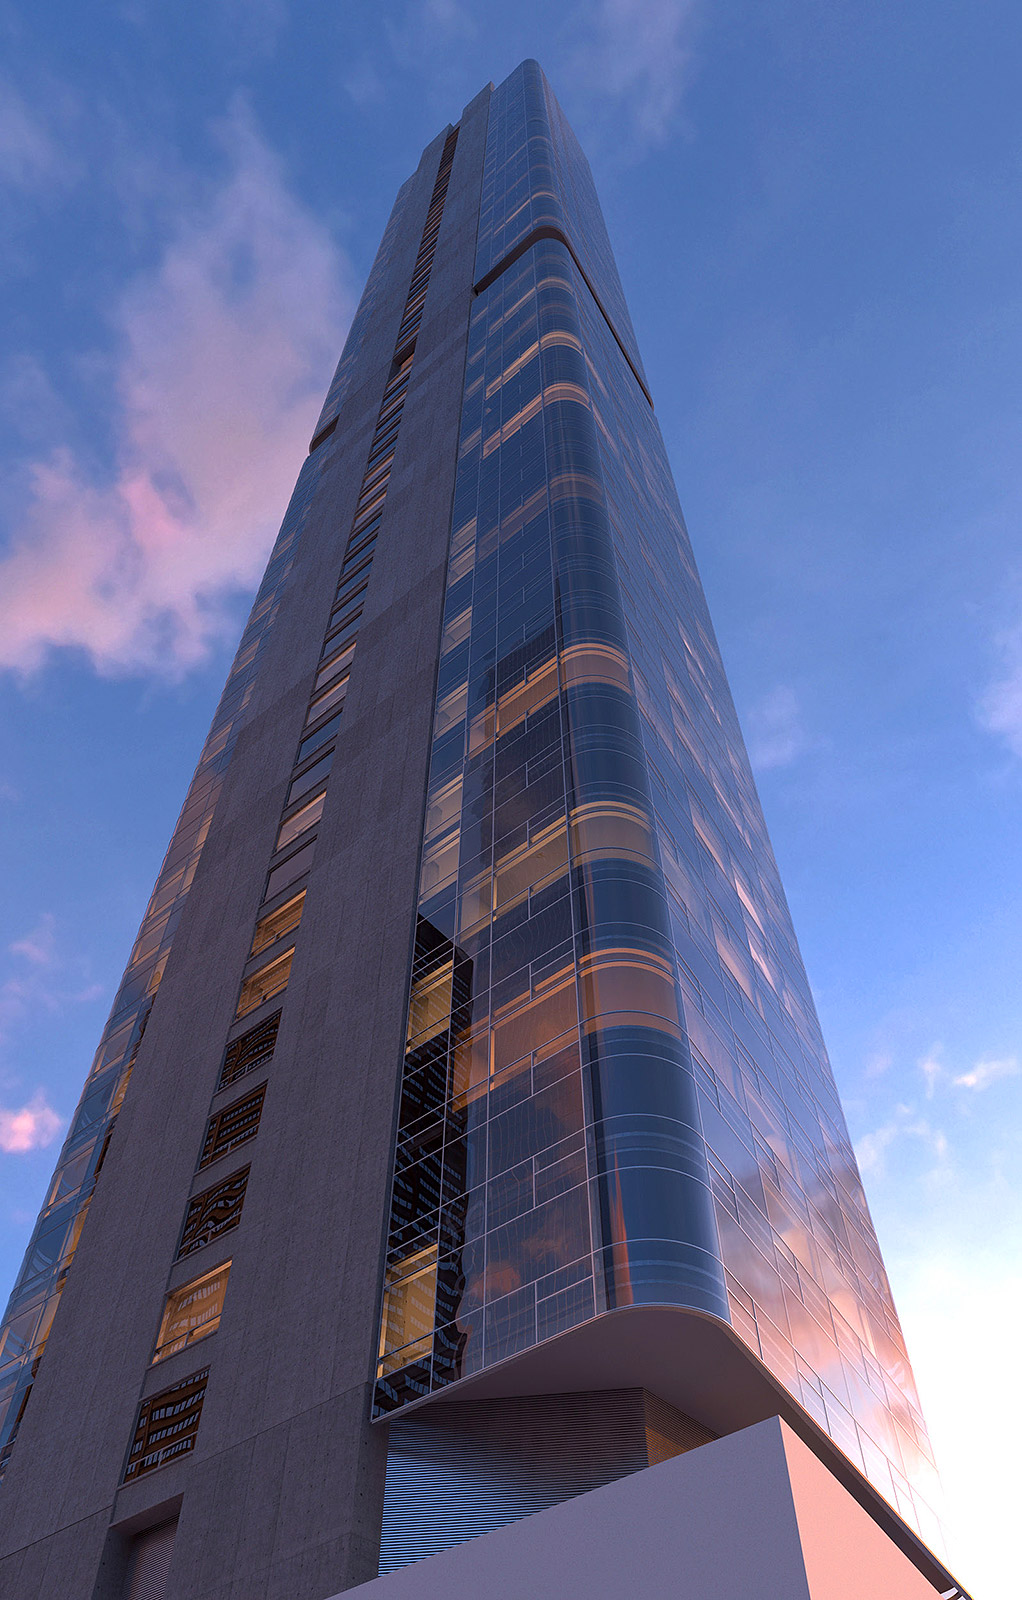 Construction Update: What is Going on at Bizzi & Partners & SHVO's 125 Greenwich Street